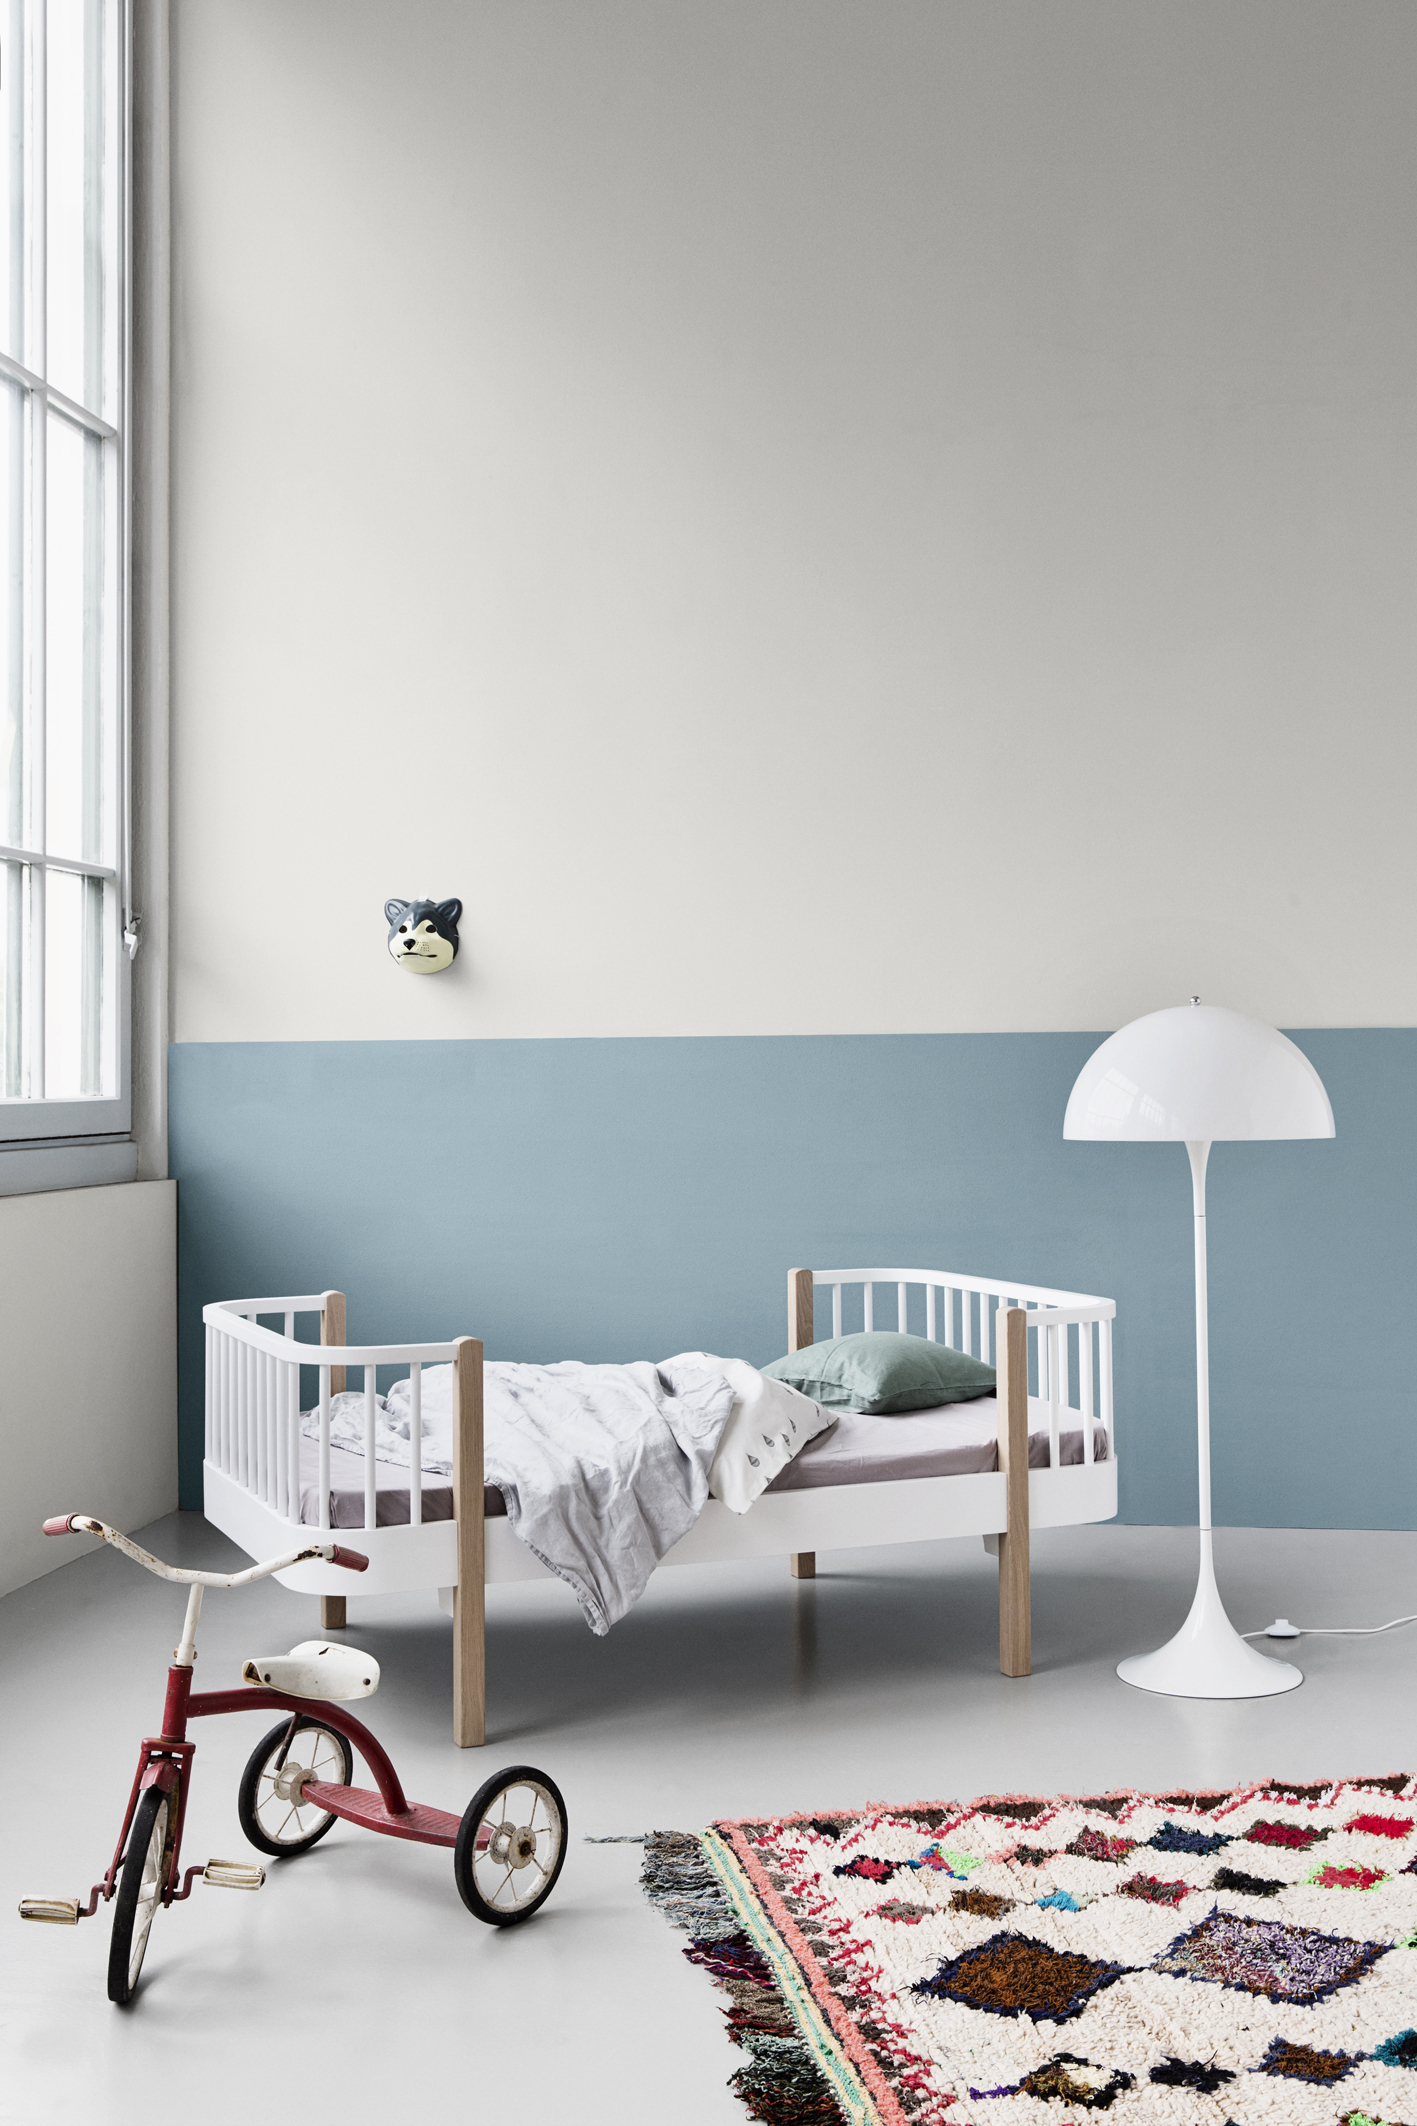 mood_041401_Wood_junior_bed_oak1